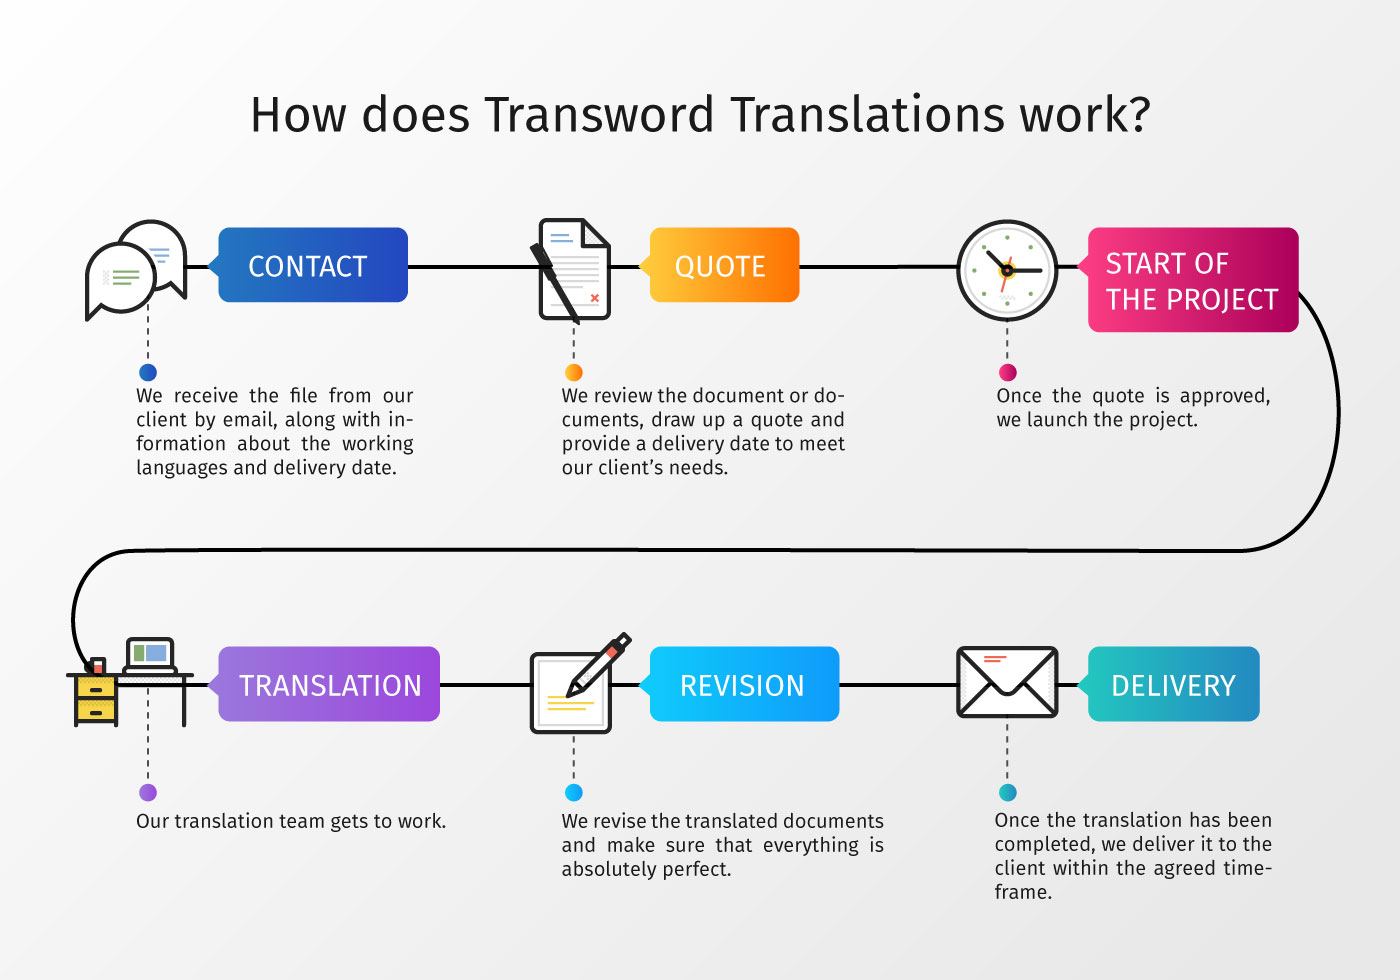 How does Transword Translations work?